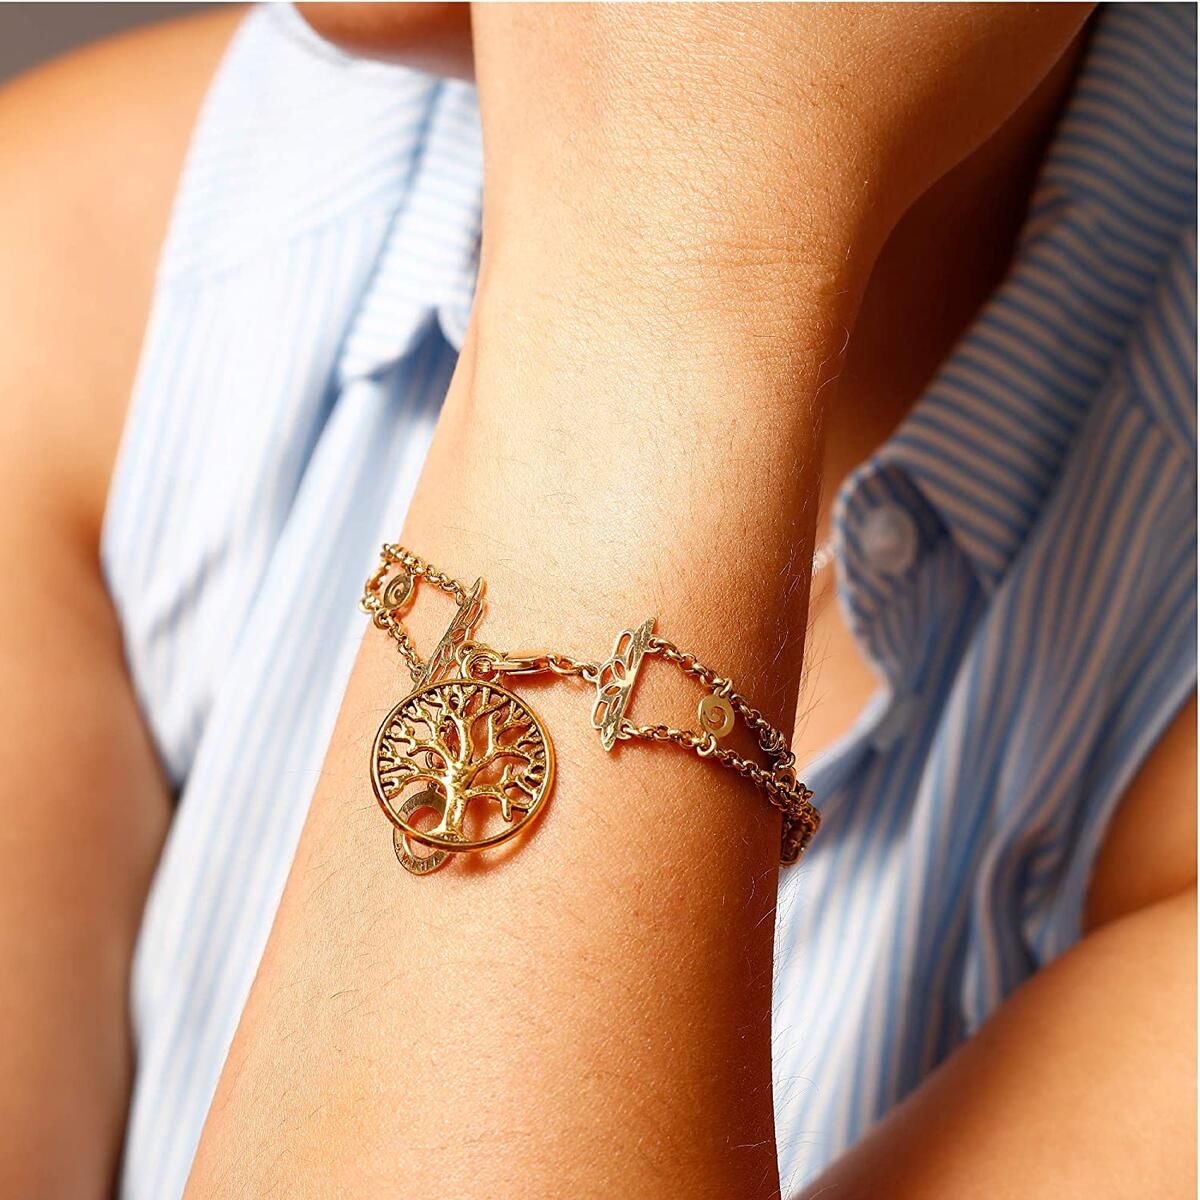 Incraftables Gold Charms 100pcs PLUS 15pcs Clasps & Rings. Best Antique Metal Pendants for DIY Bracelet, Keychain, Necklace & Jewelry Making.